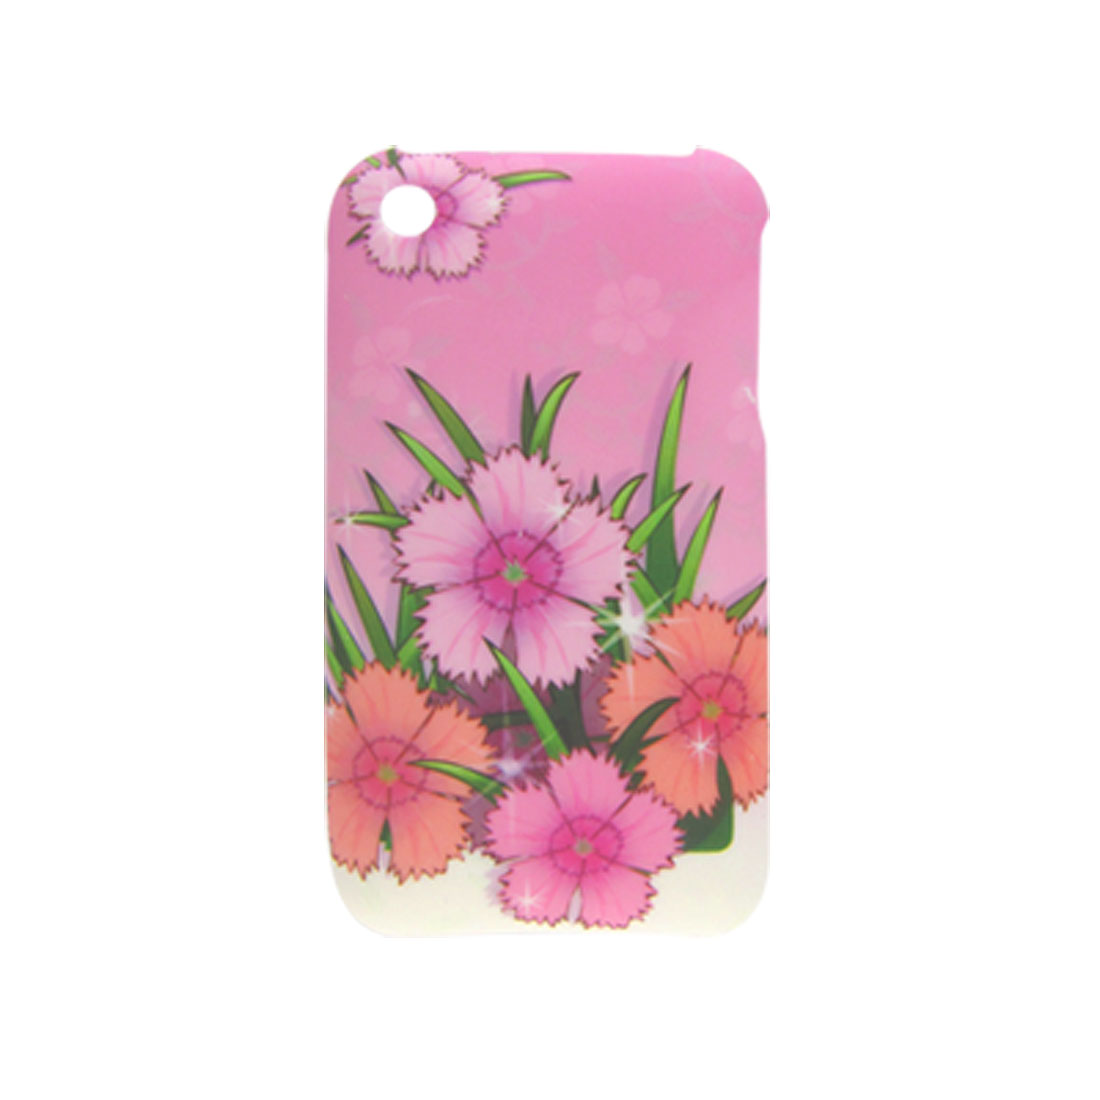 Pink Flower Pattern Rubberized Hard Plastic Case for Apple iPhone 3G